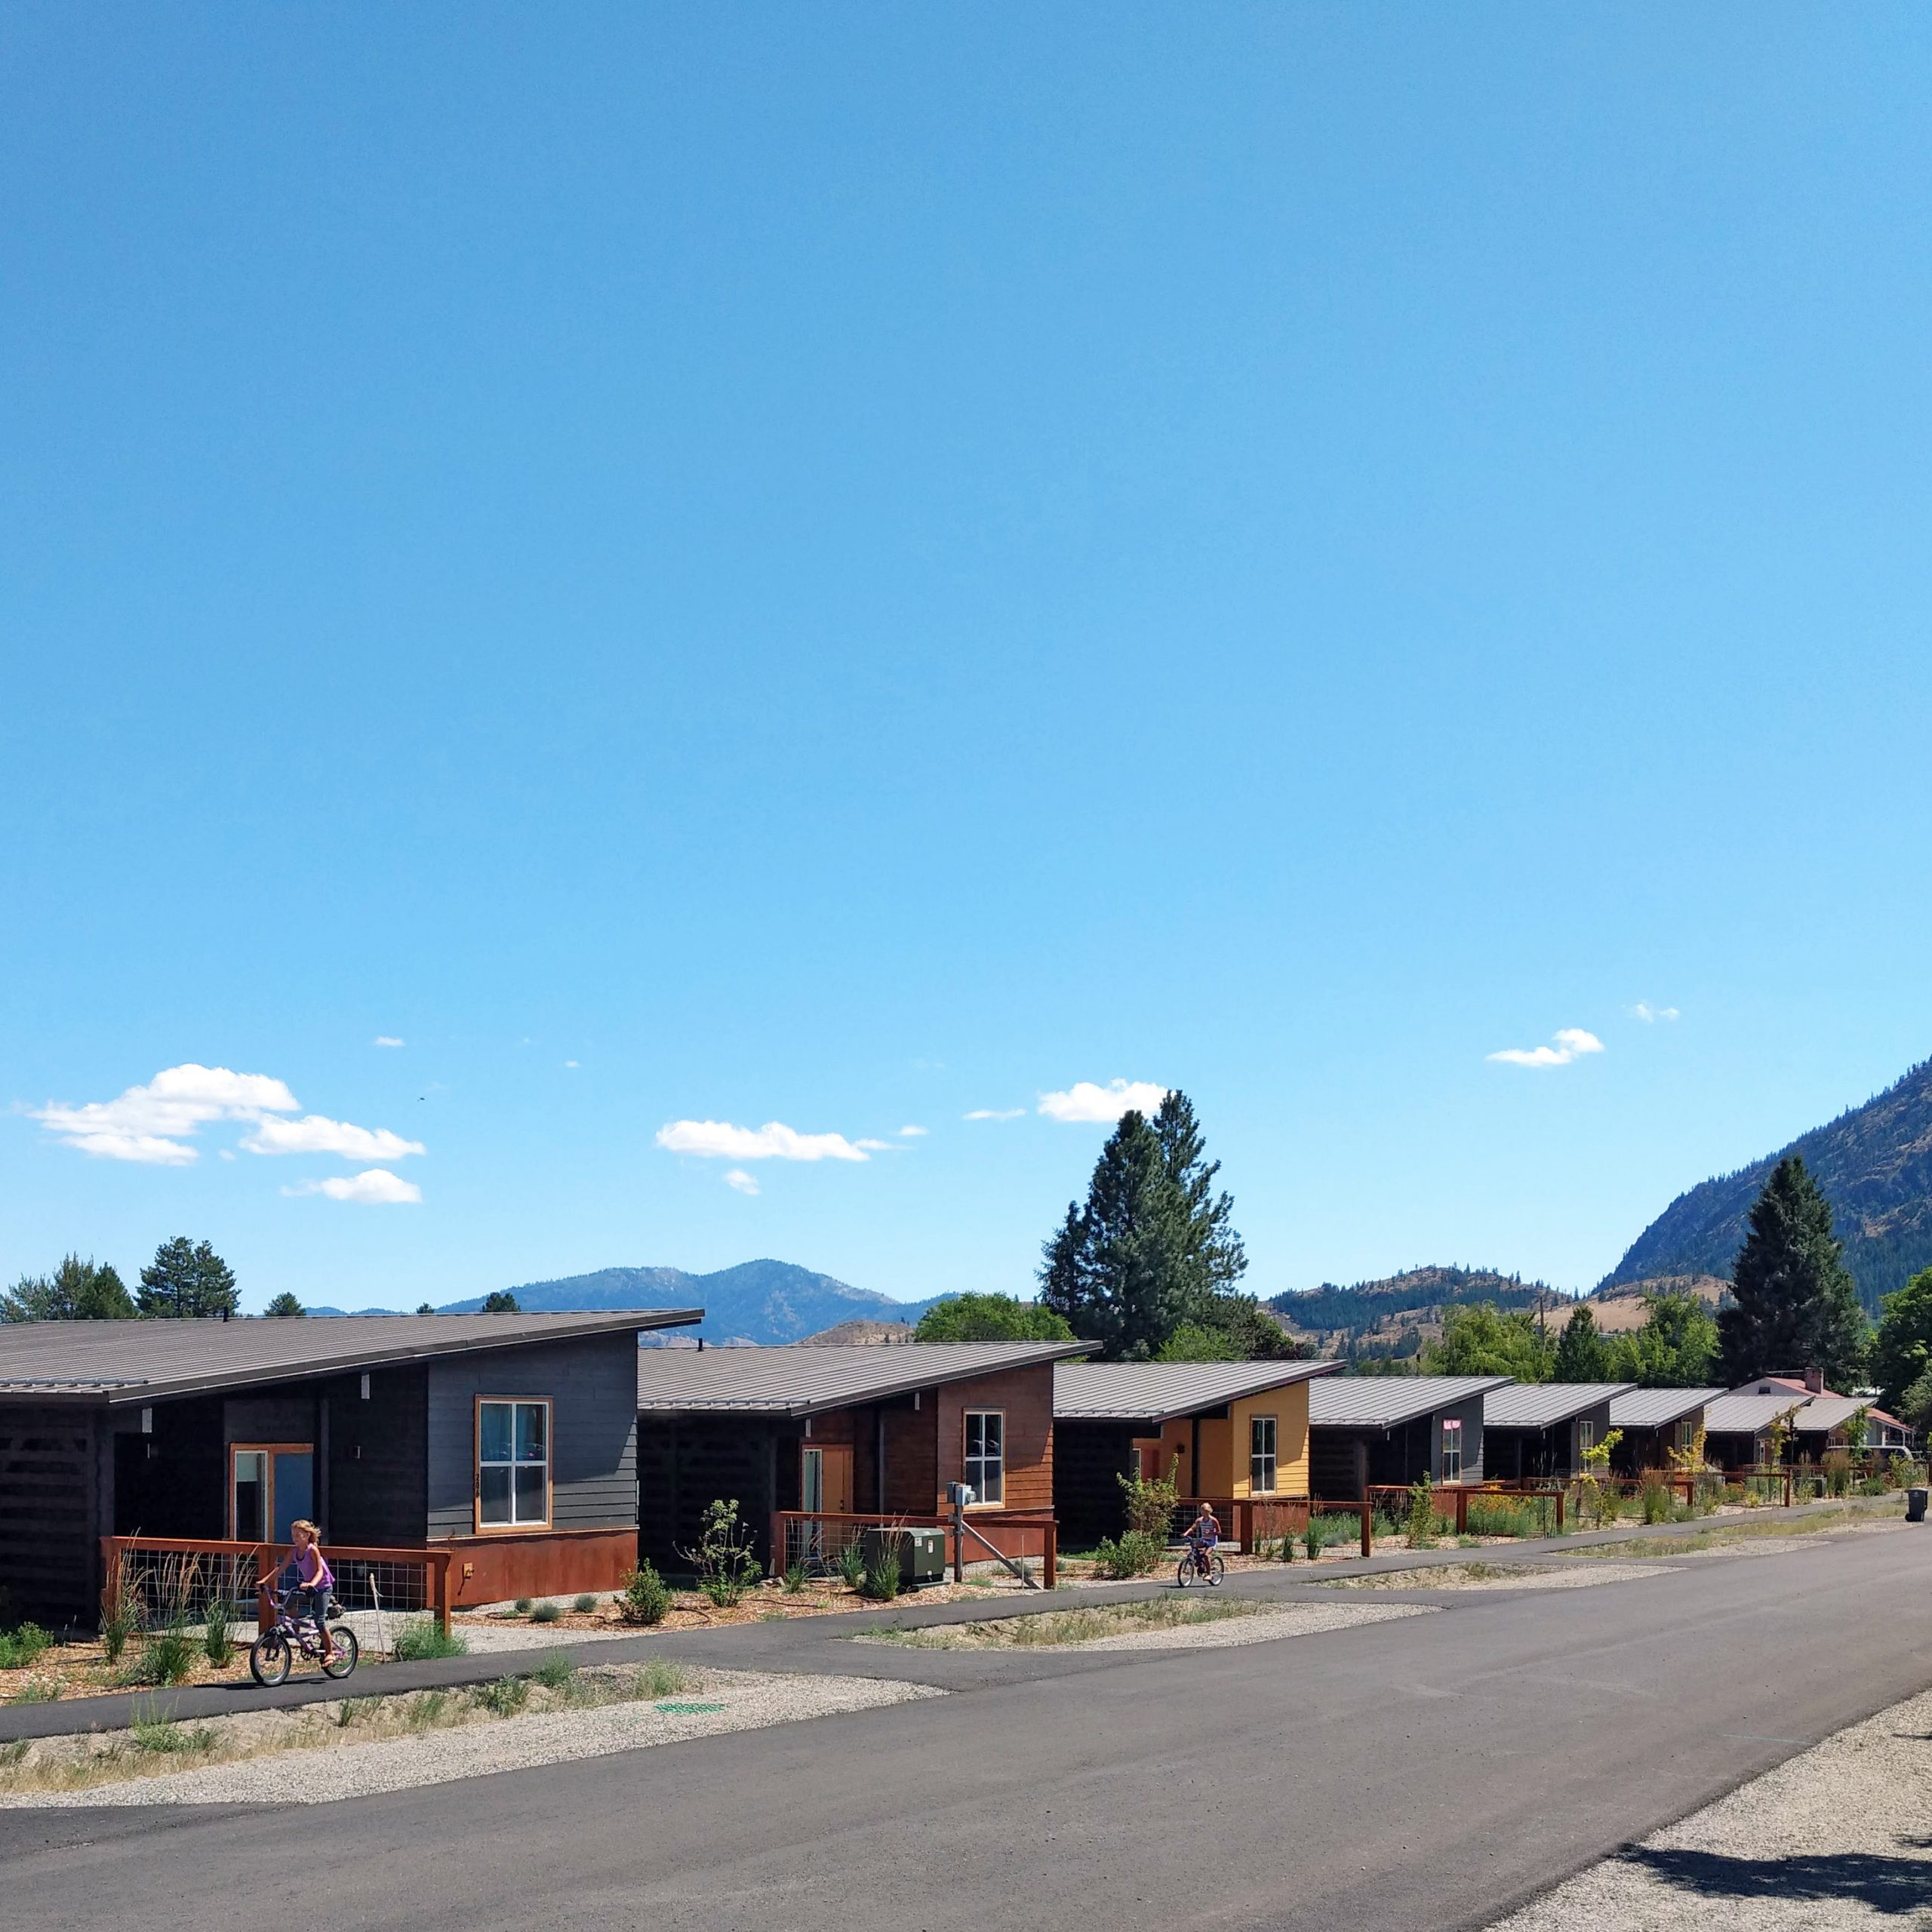 Houses on Canyon Street are an example of development in the Valley